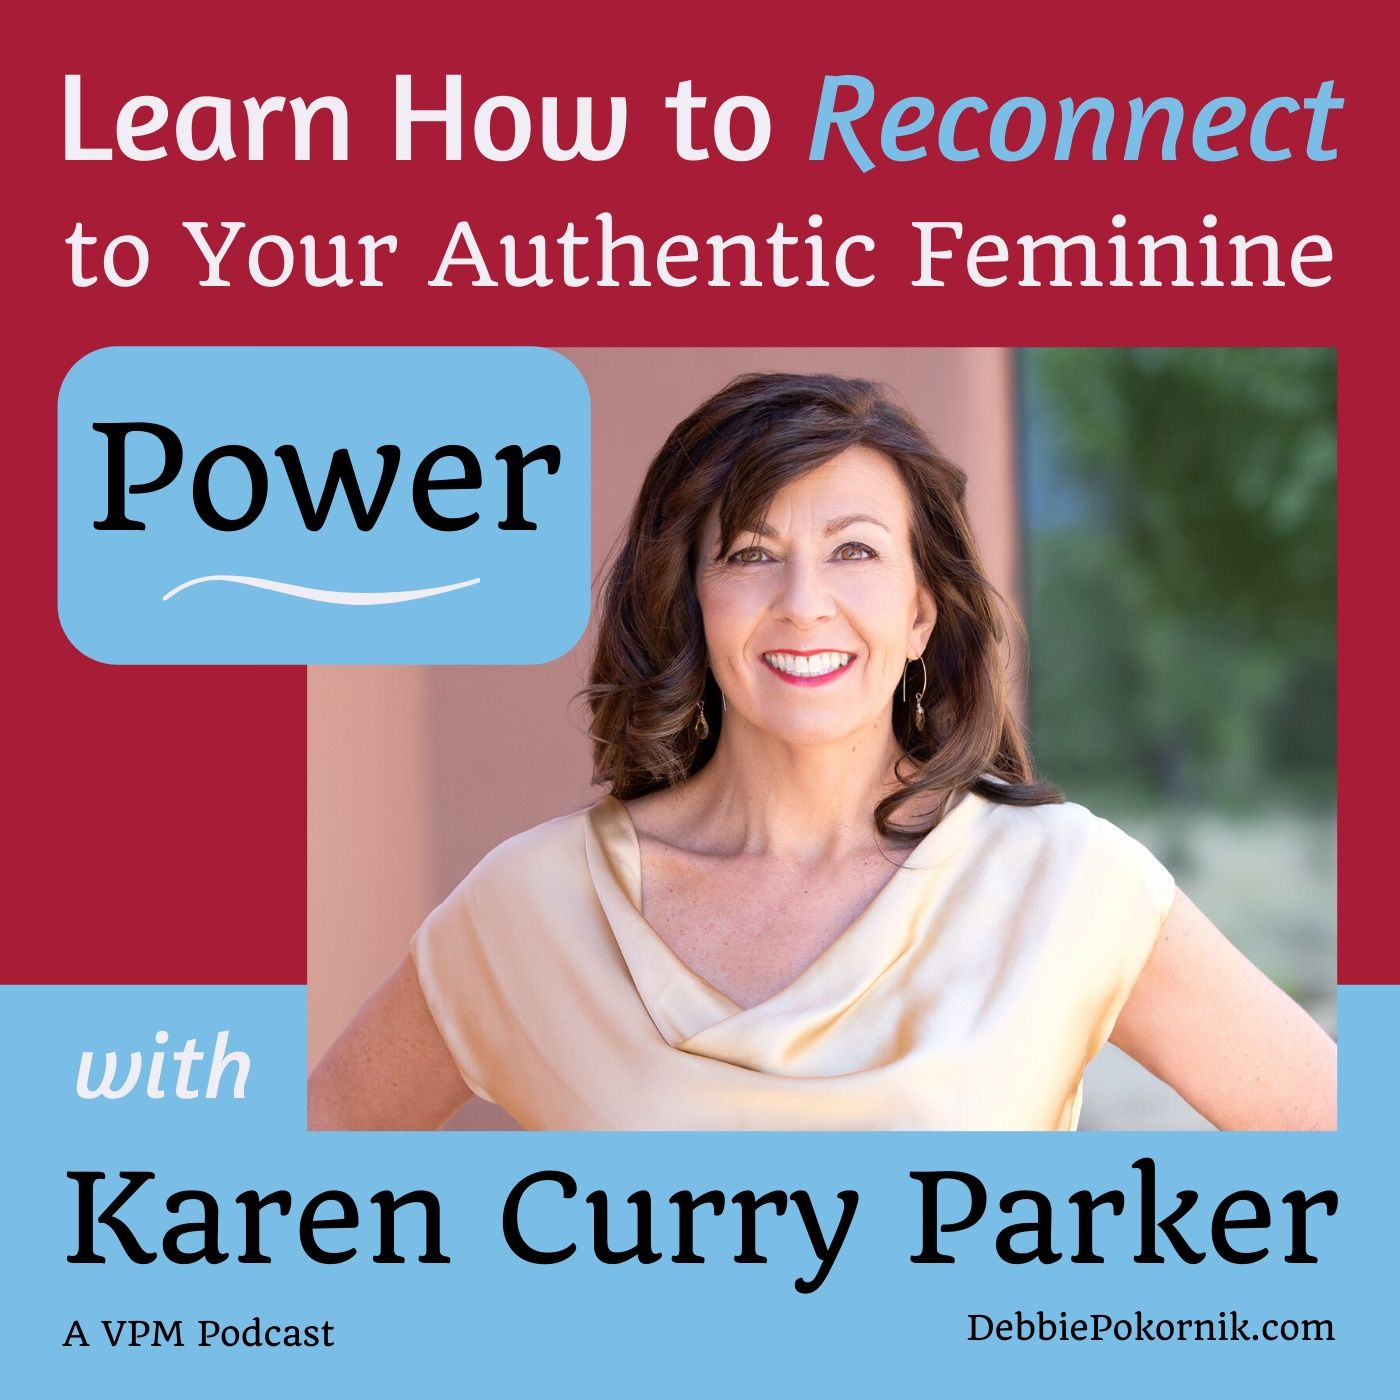 Learn how to reconnect to your authentic feminine power with Karen Curry Parker